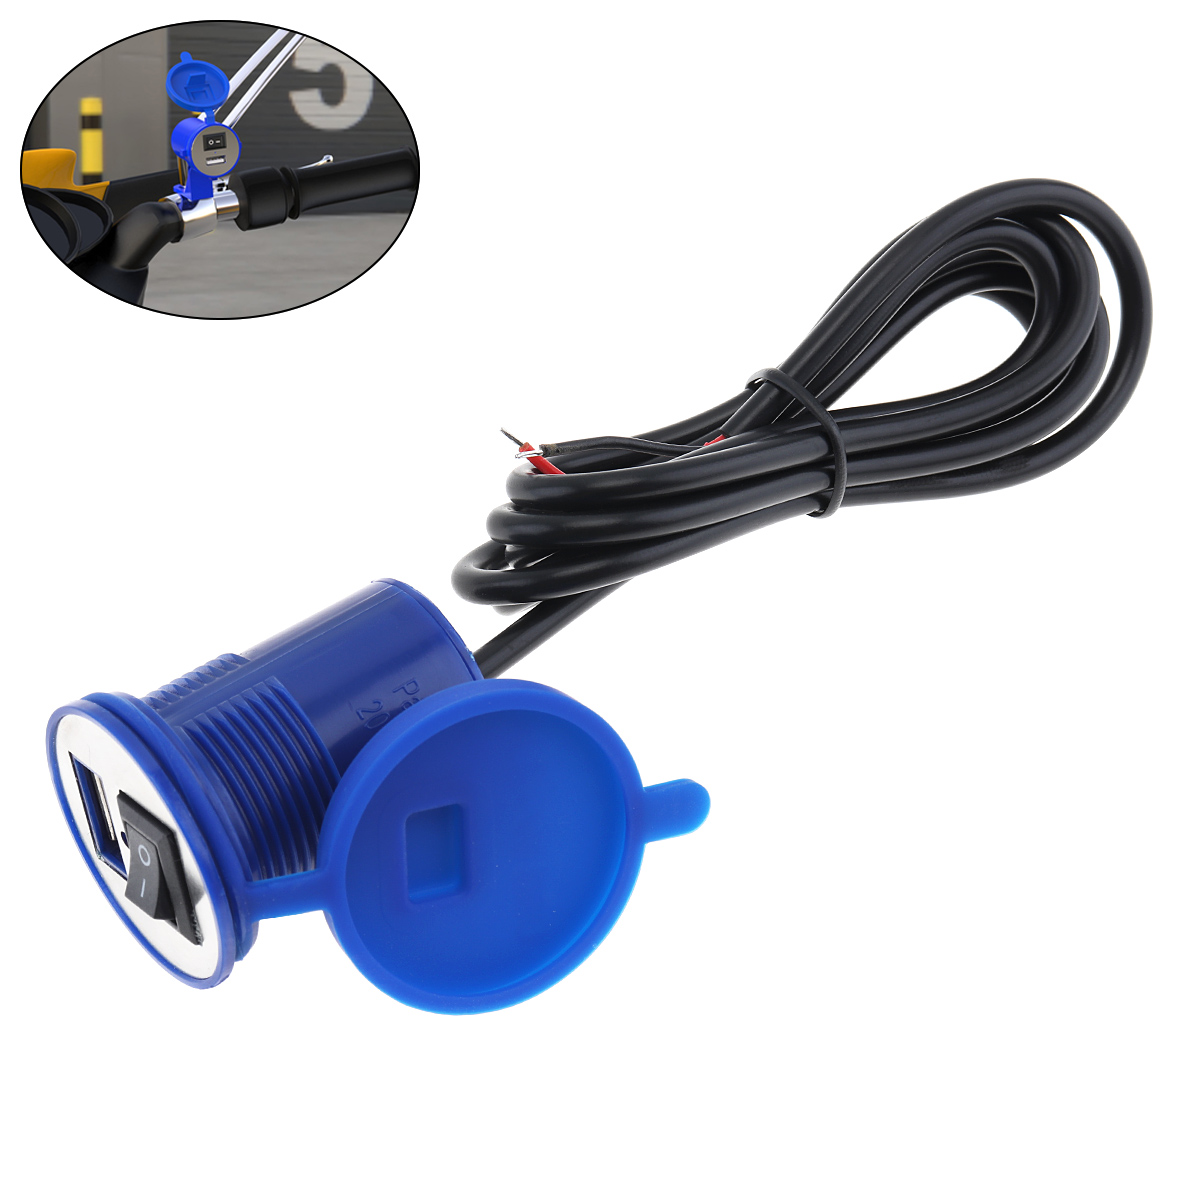 12V 2.1A Waterproof Motorcycle Chager USB Mobile Phone Charger With On-Off Switch For Cross-cycling Scooter Electric Vehicle